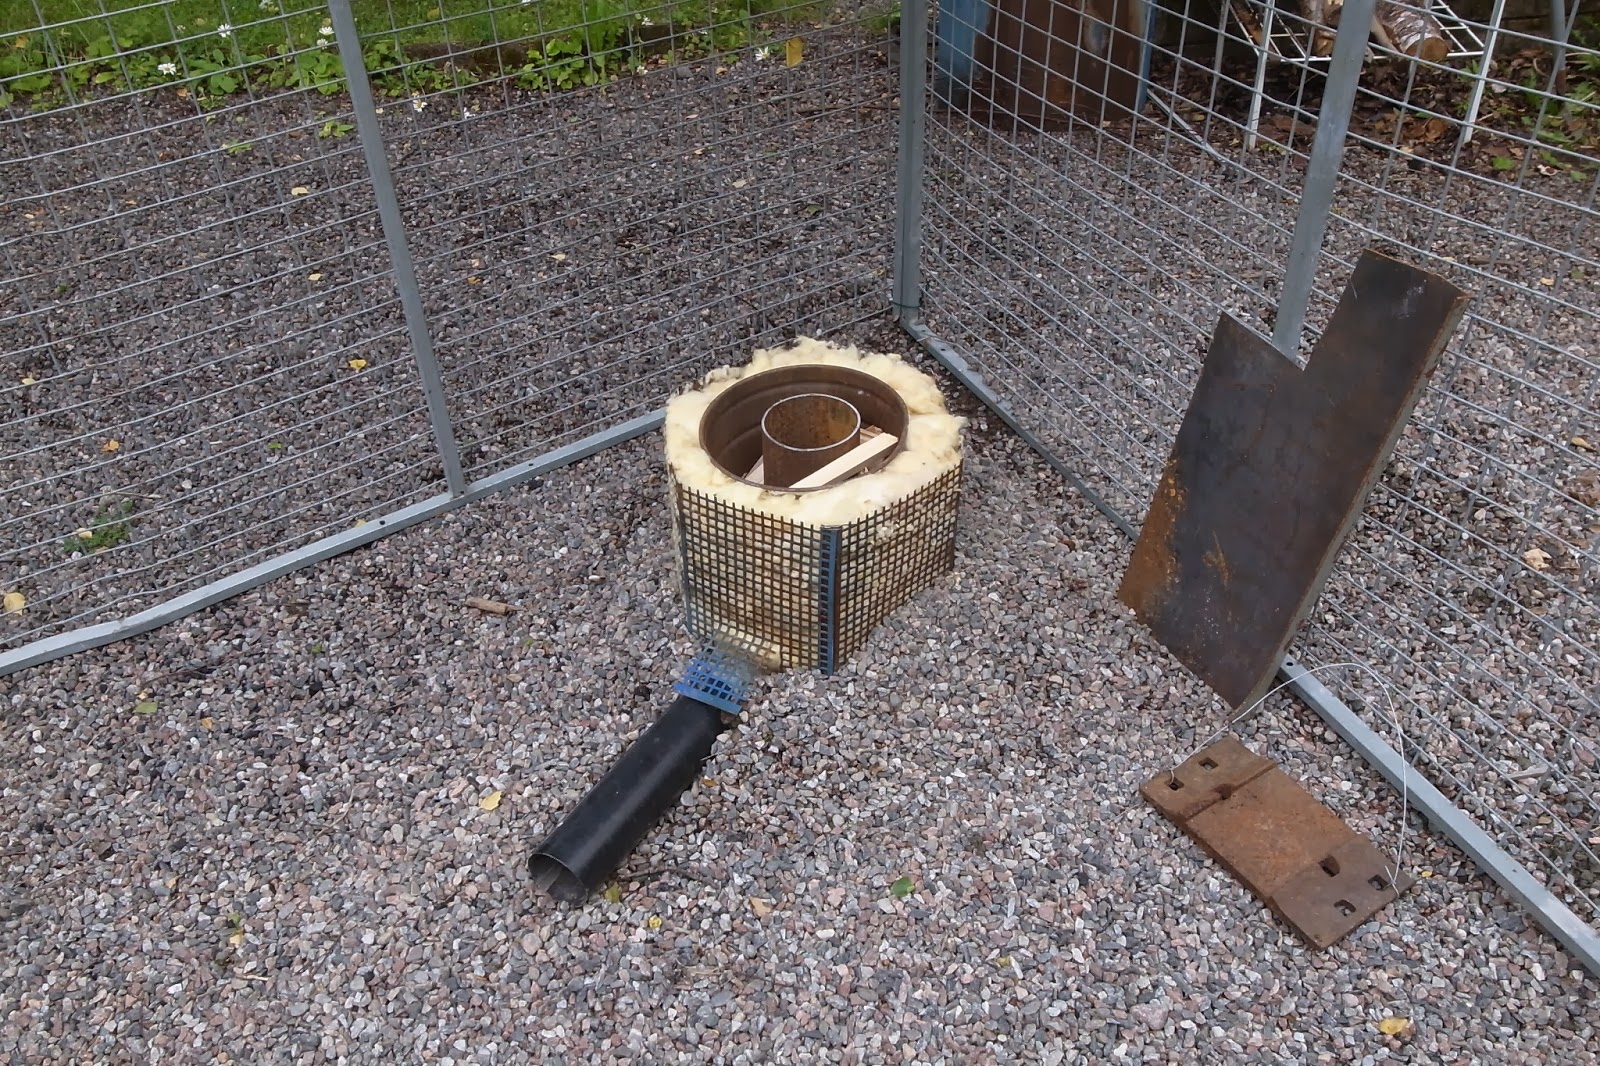 Homemade Tools & Aids: Small furnaces